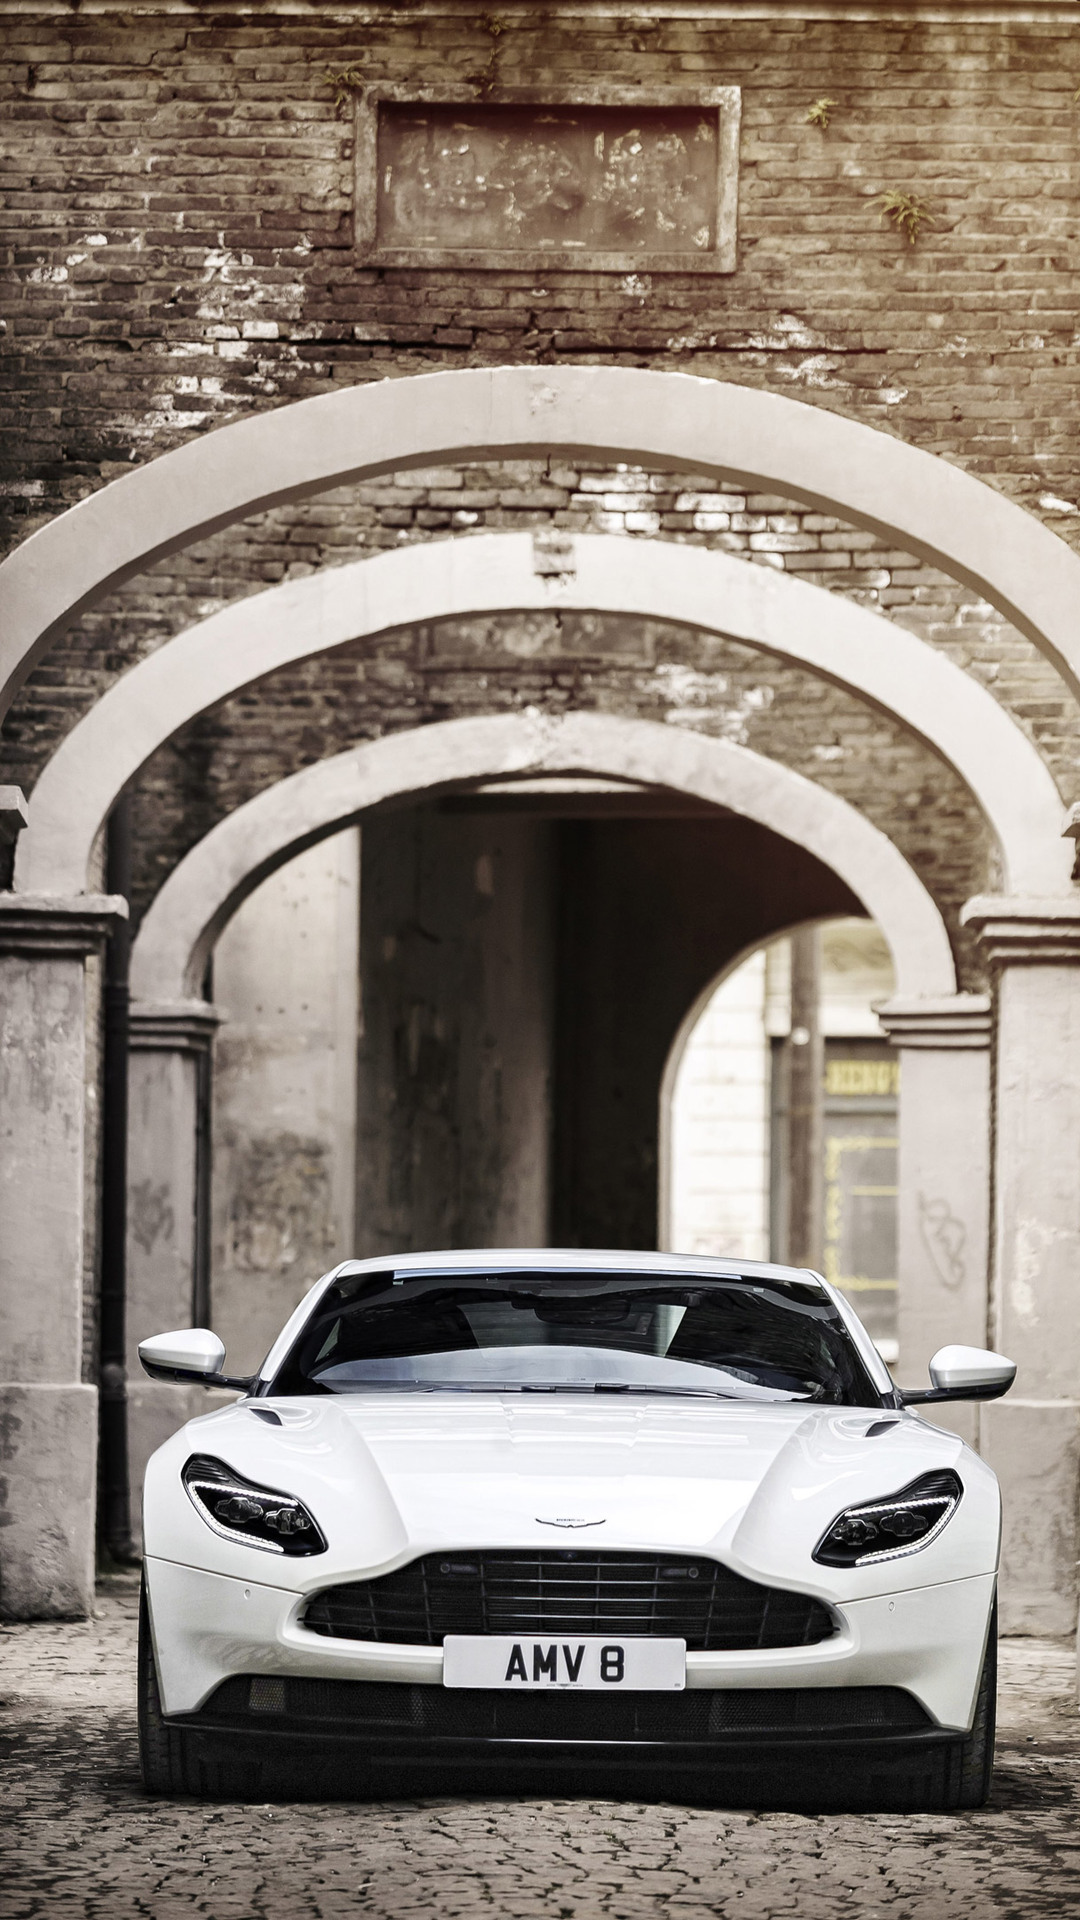 aston martin db11 iphone 7